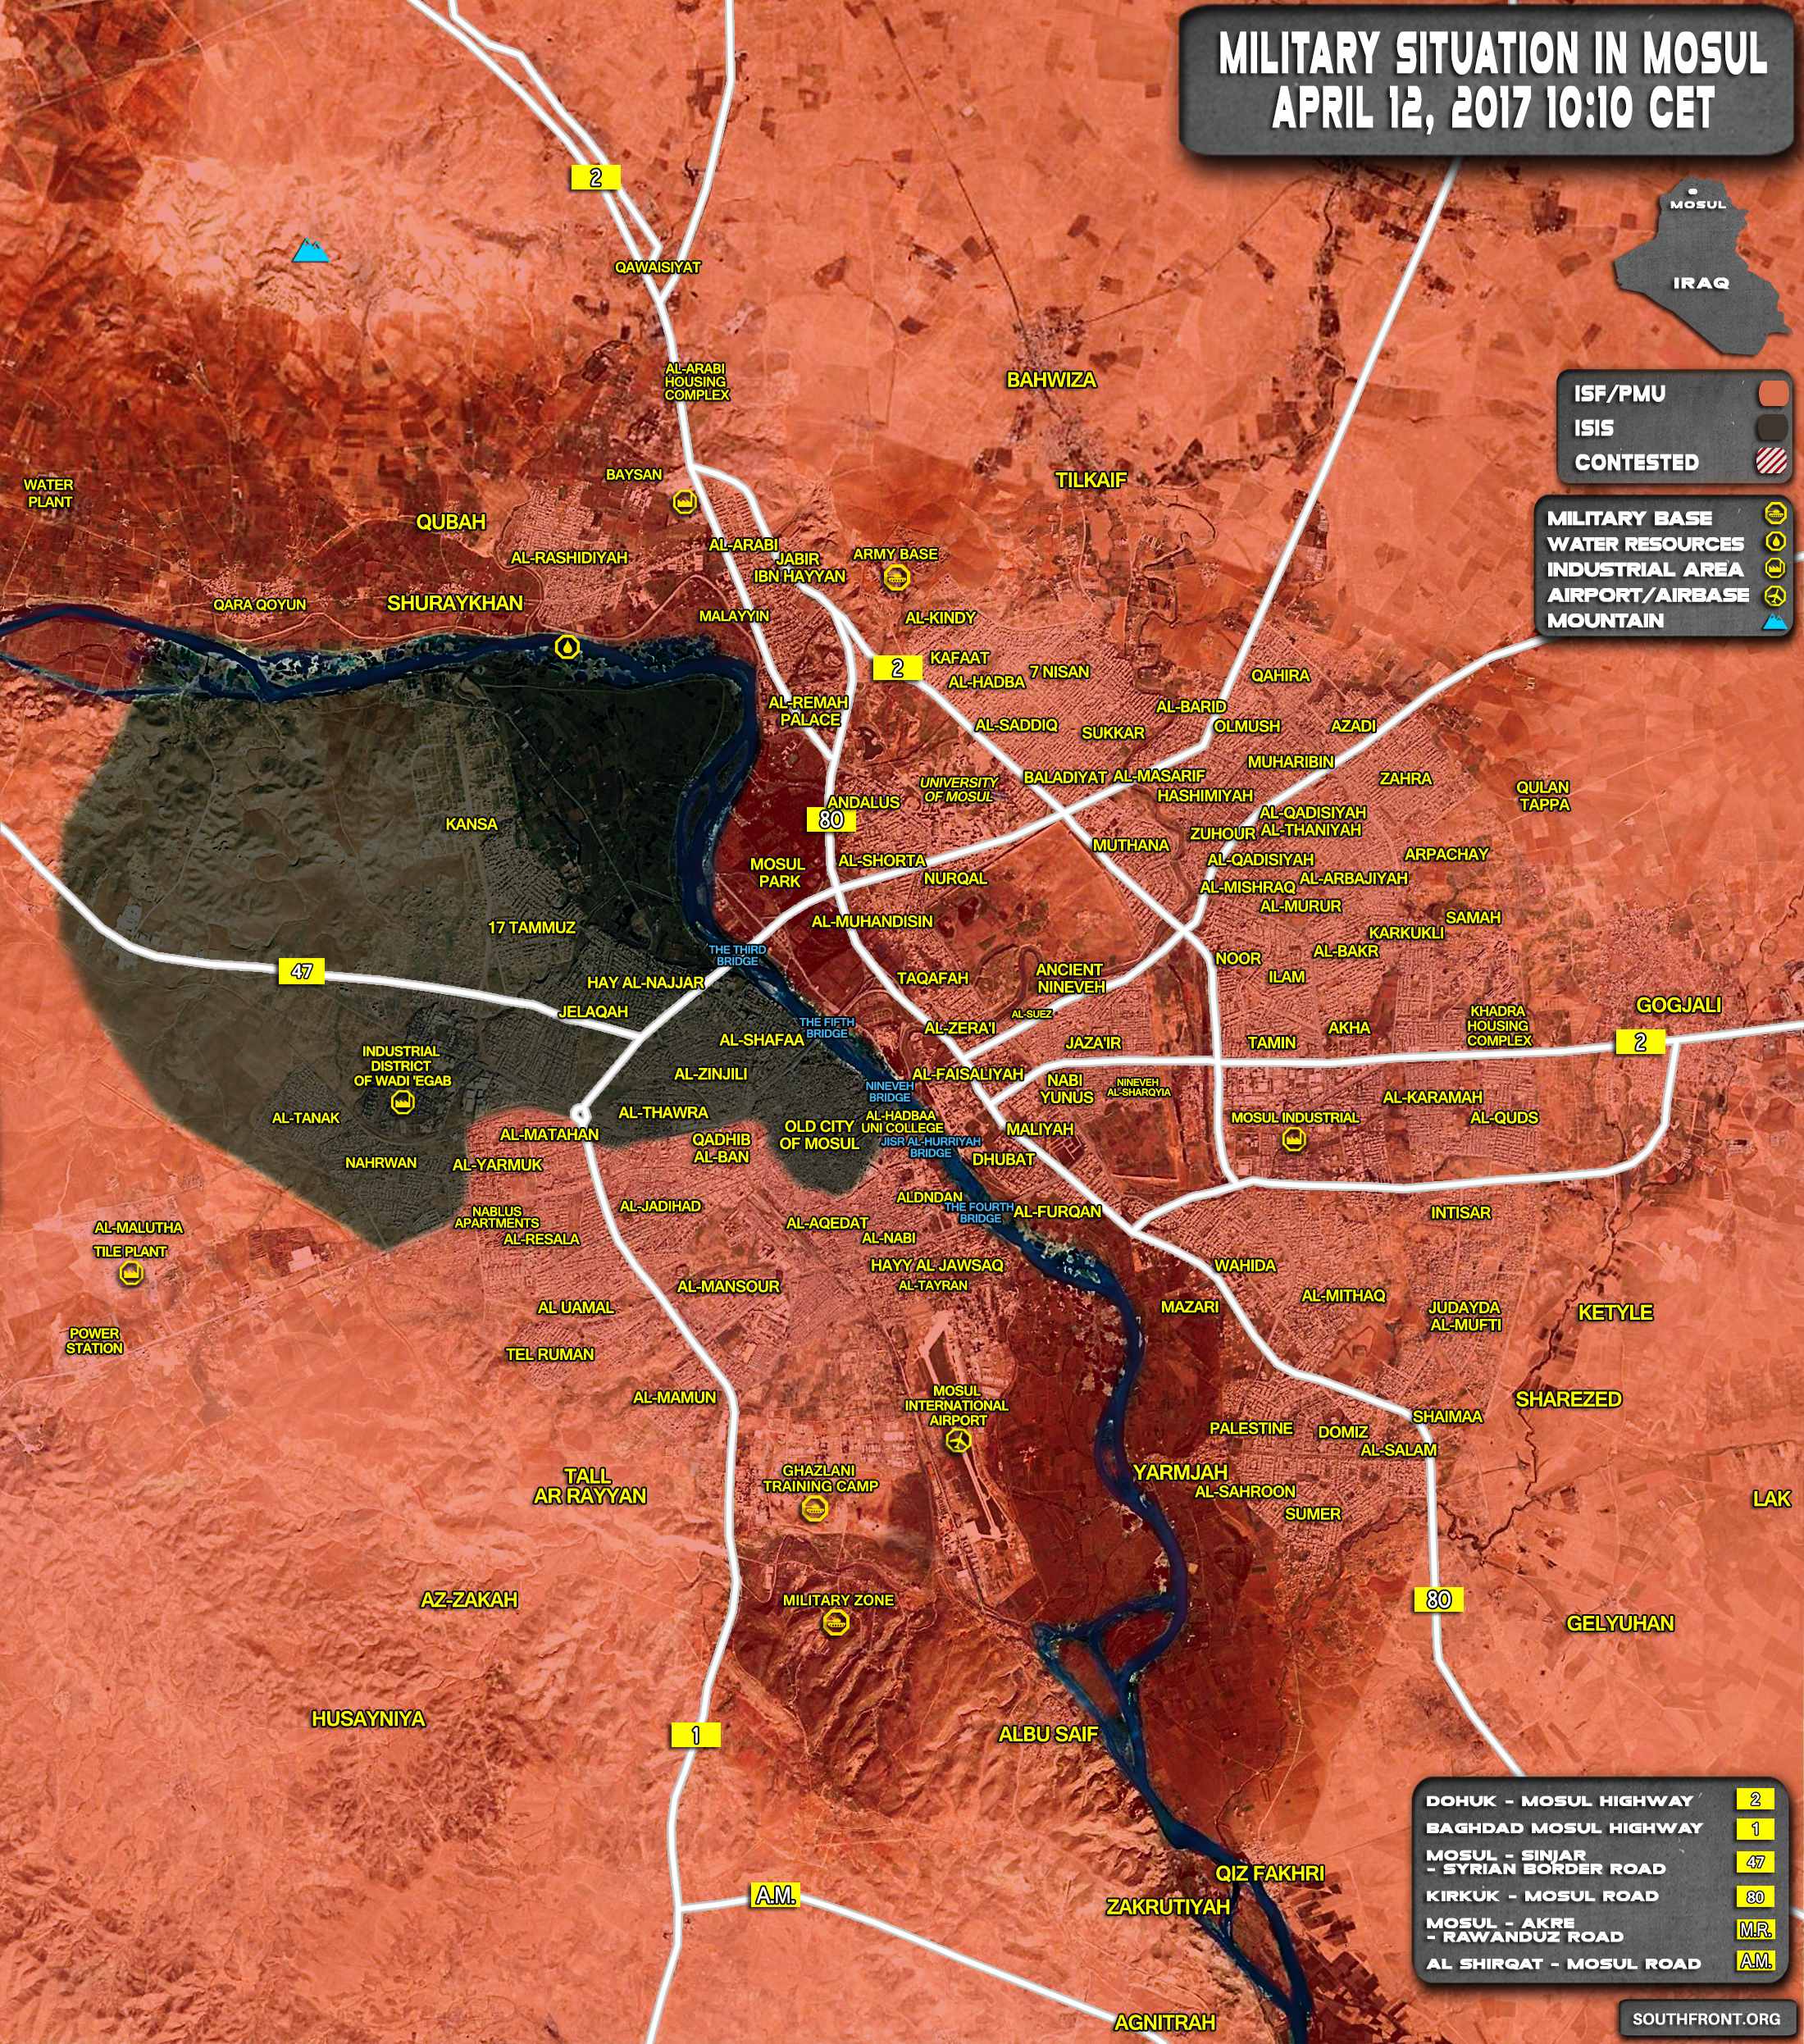 Military Situation In Iraqi City Of Mosul On April 12, 2017 (Map Update)